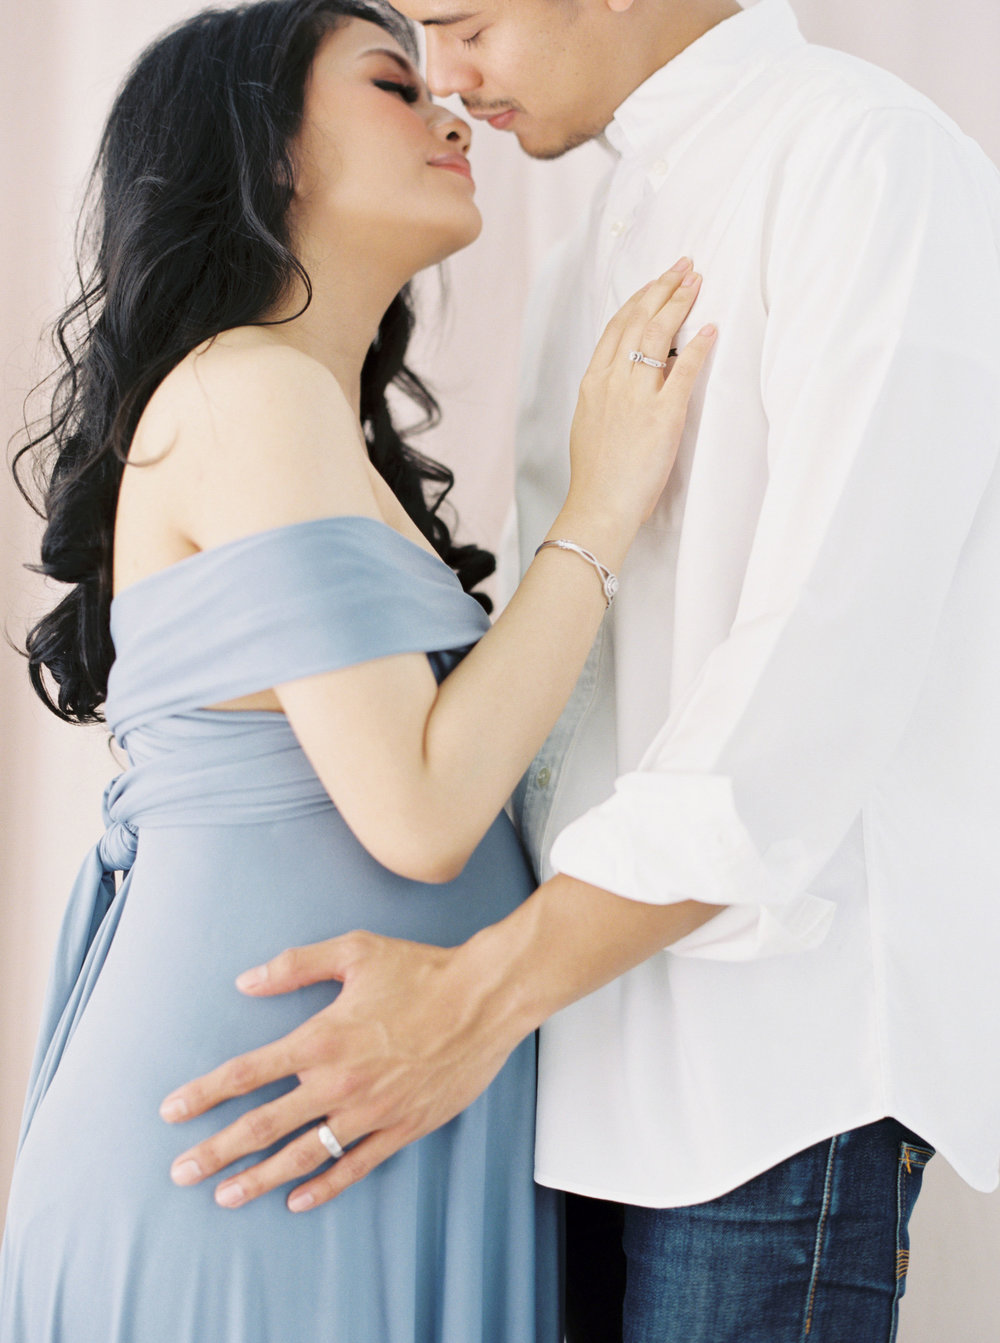 Romantic Elegant Couple Maternity Portrait - Studio June - Film Photography & Styling - Jakarta-48.jpg